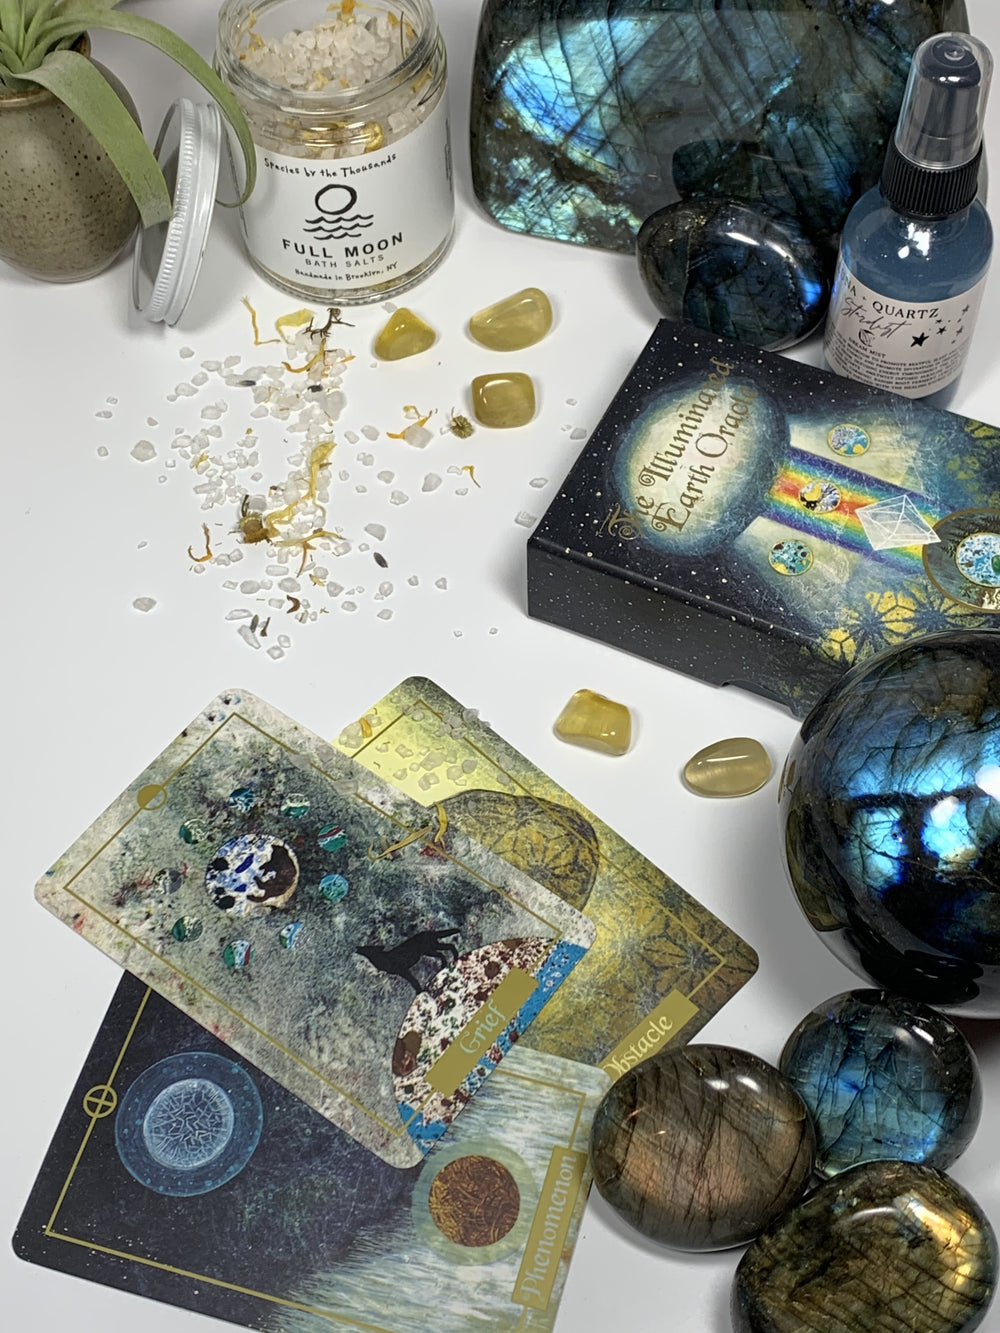 Illuminated Earth Oracle with high flash labradorite crystals, palm stones, spheres, bath salts and Luna and Quartz Stardust spray